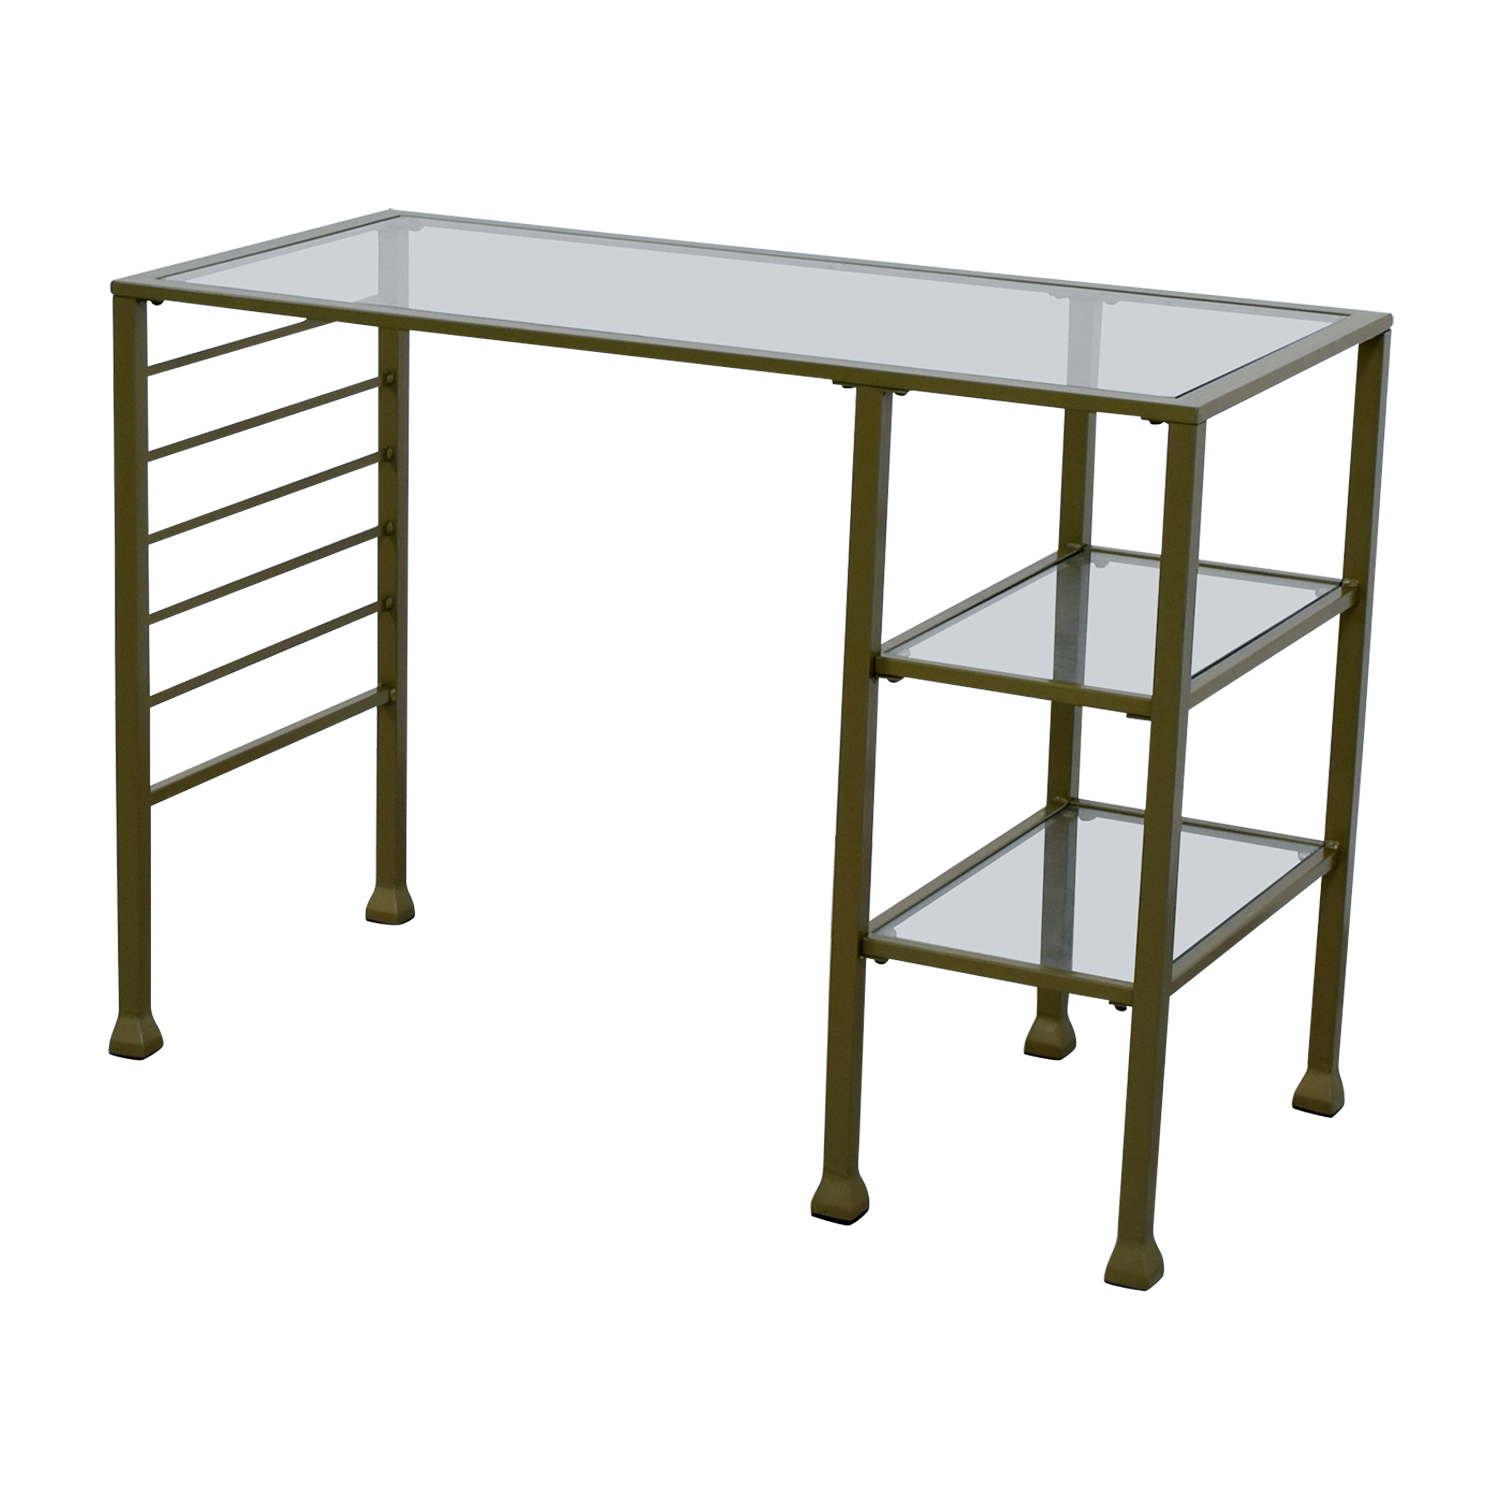 Off wayfair gold matte writing desk tables